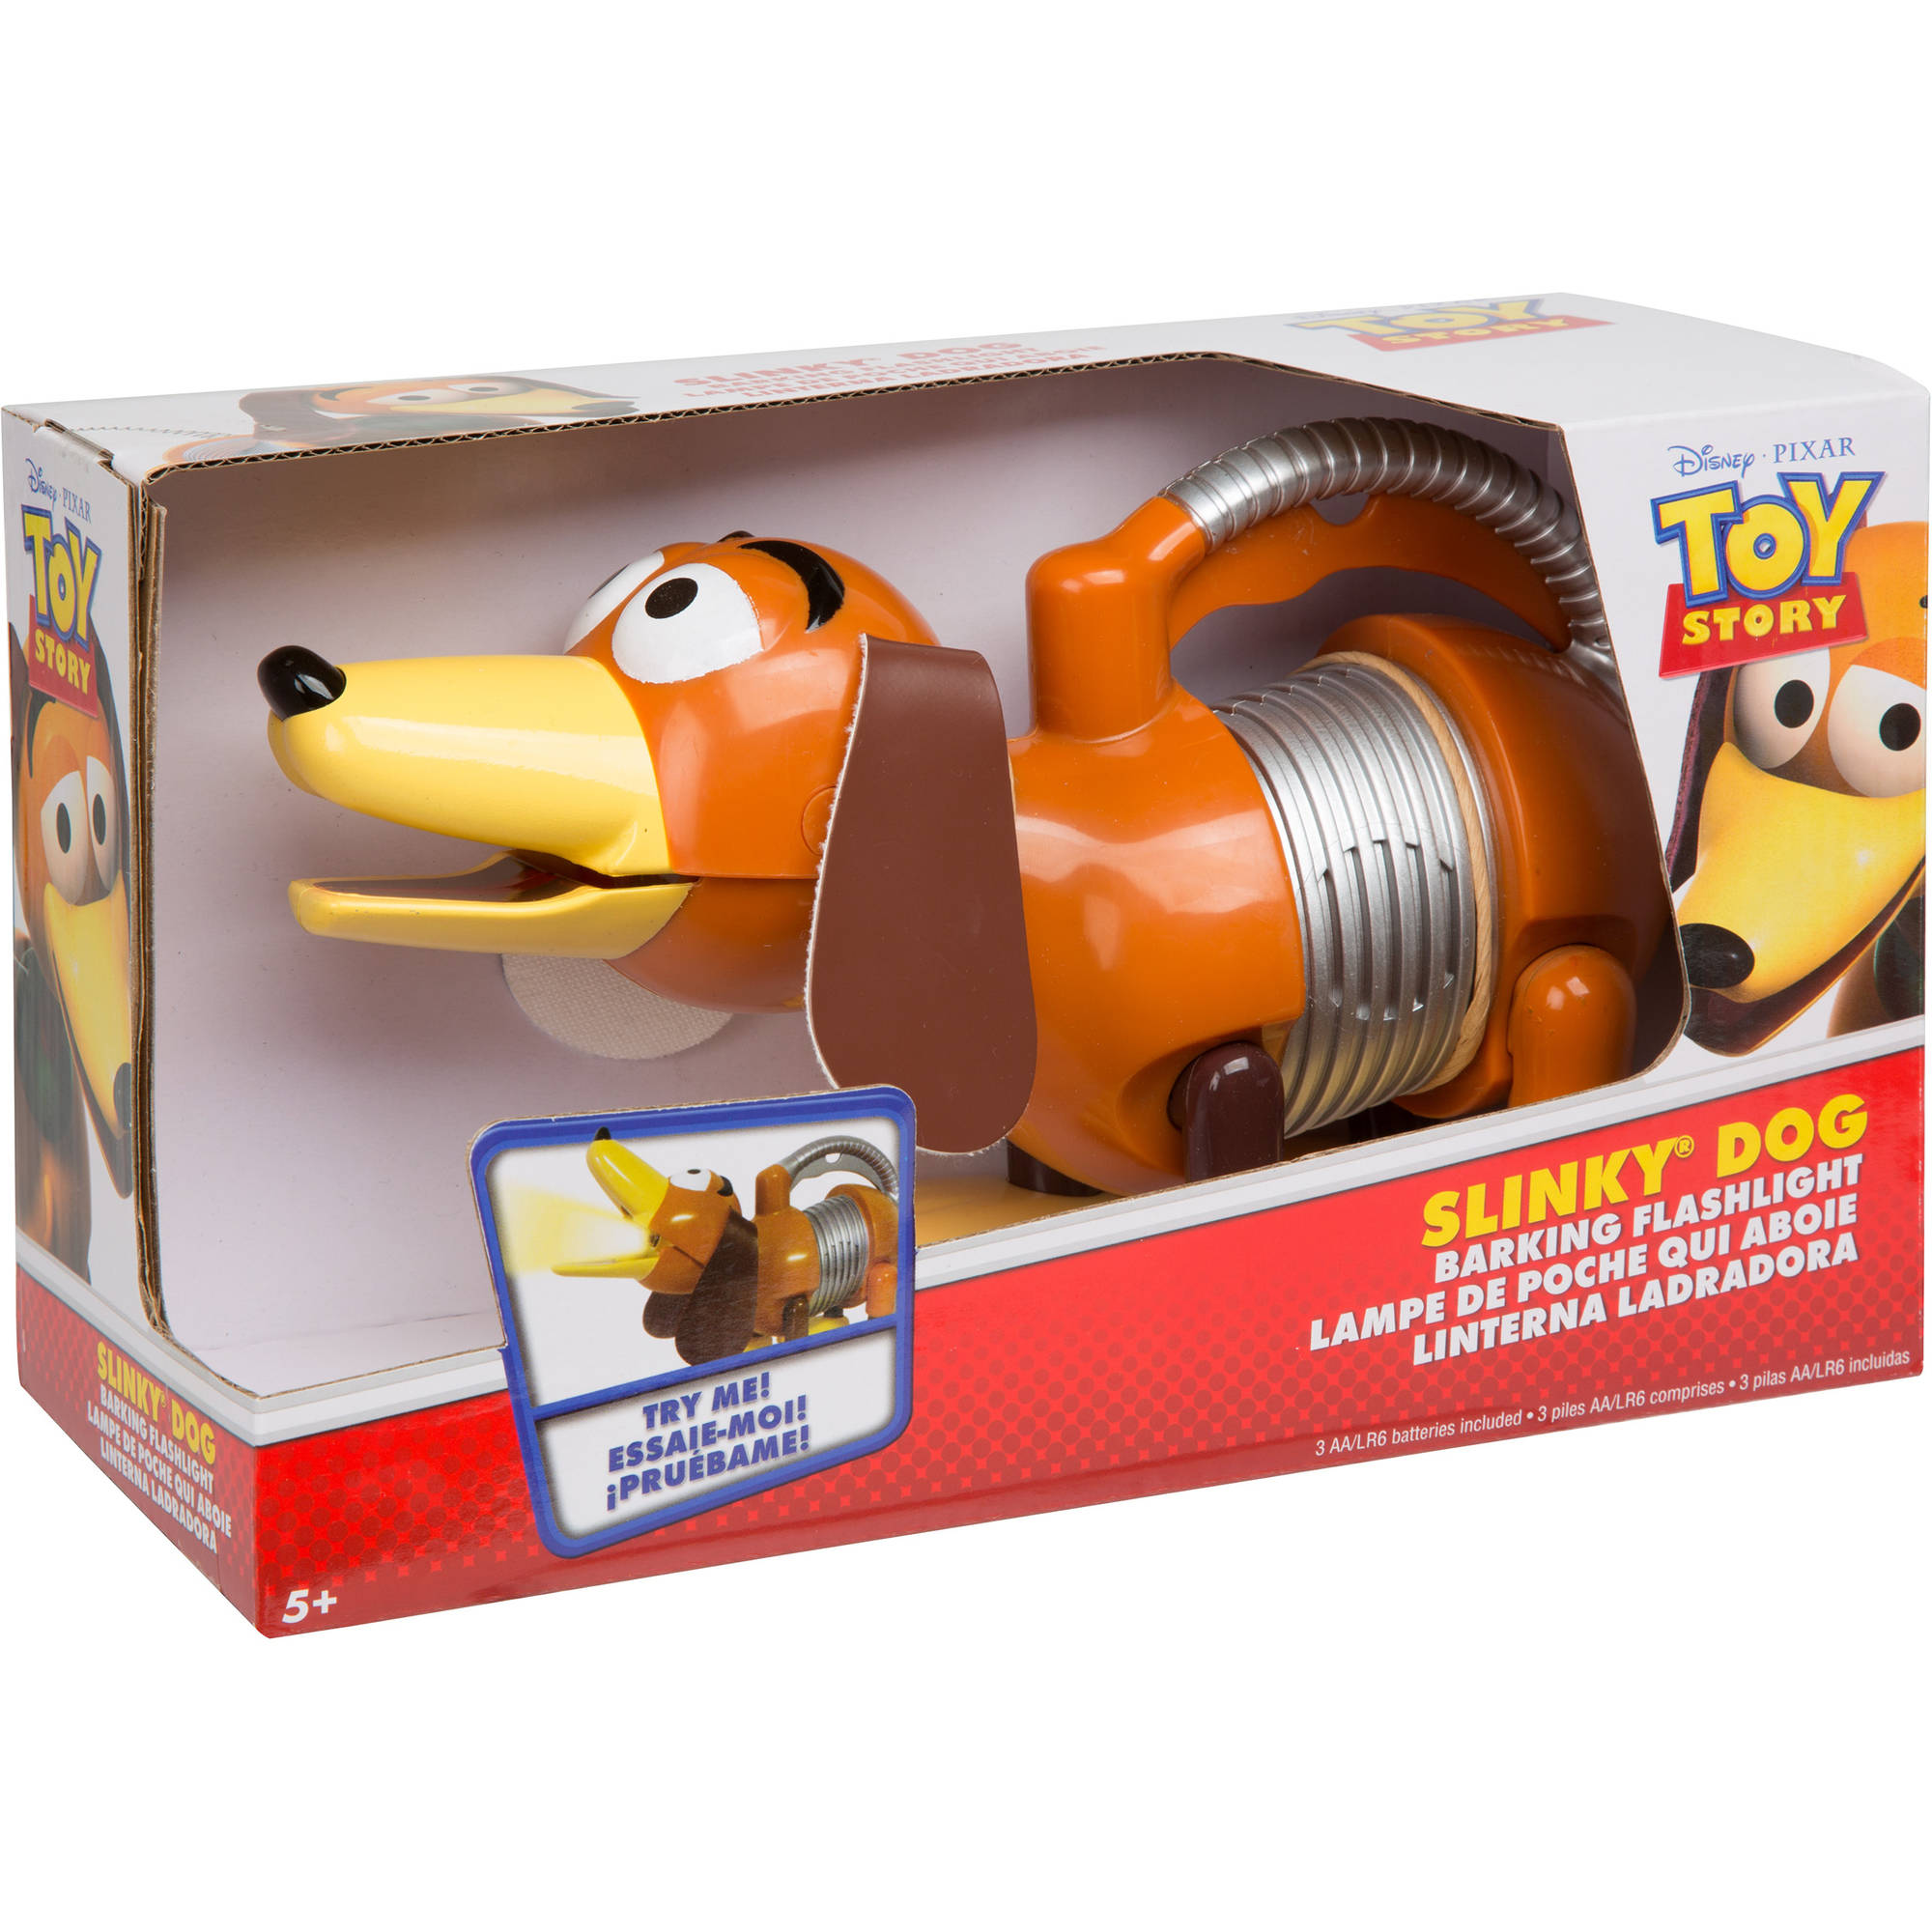 Generic Disney Toy Story Slinky Dog Barking Flashlight  sc 1 st  Shop at Ebates & ONLINE Disney/Pixar Toy Story Bed Tent Blue | Shop at Ebates